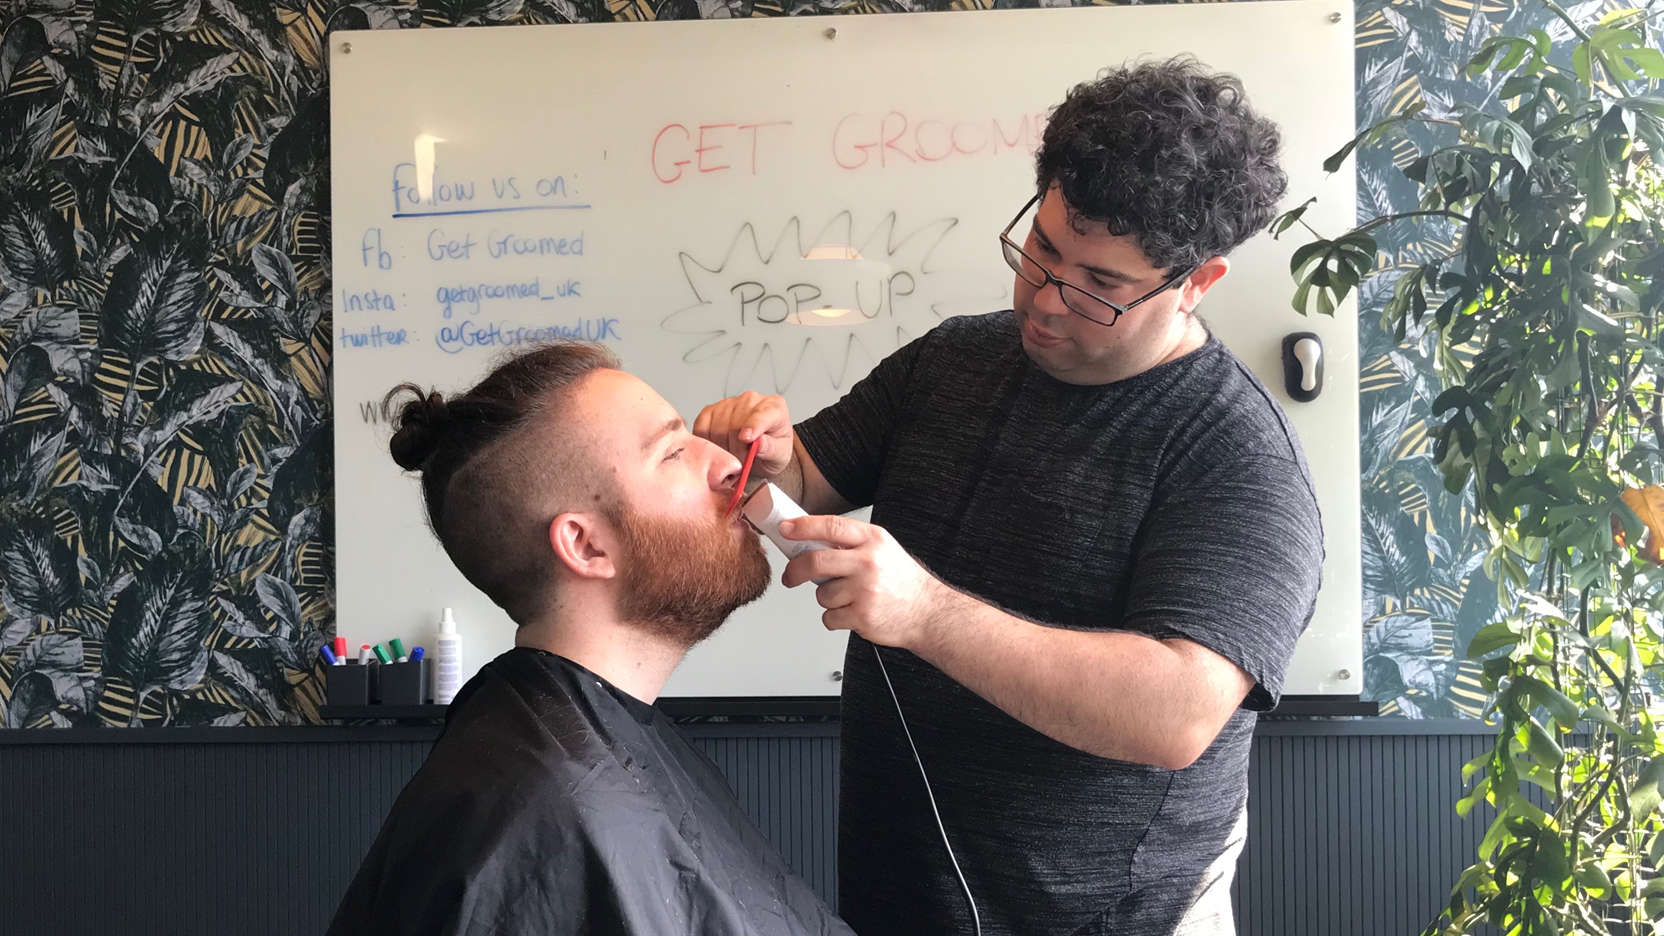 Check out Danny's interview, one of our senior barber!